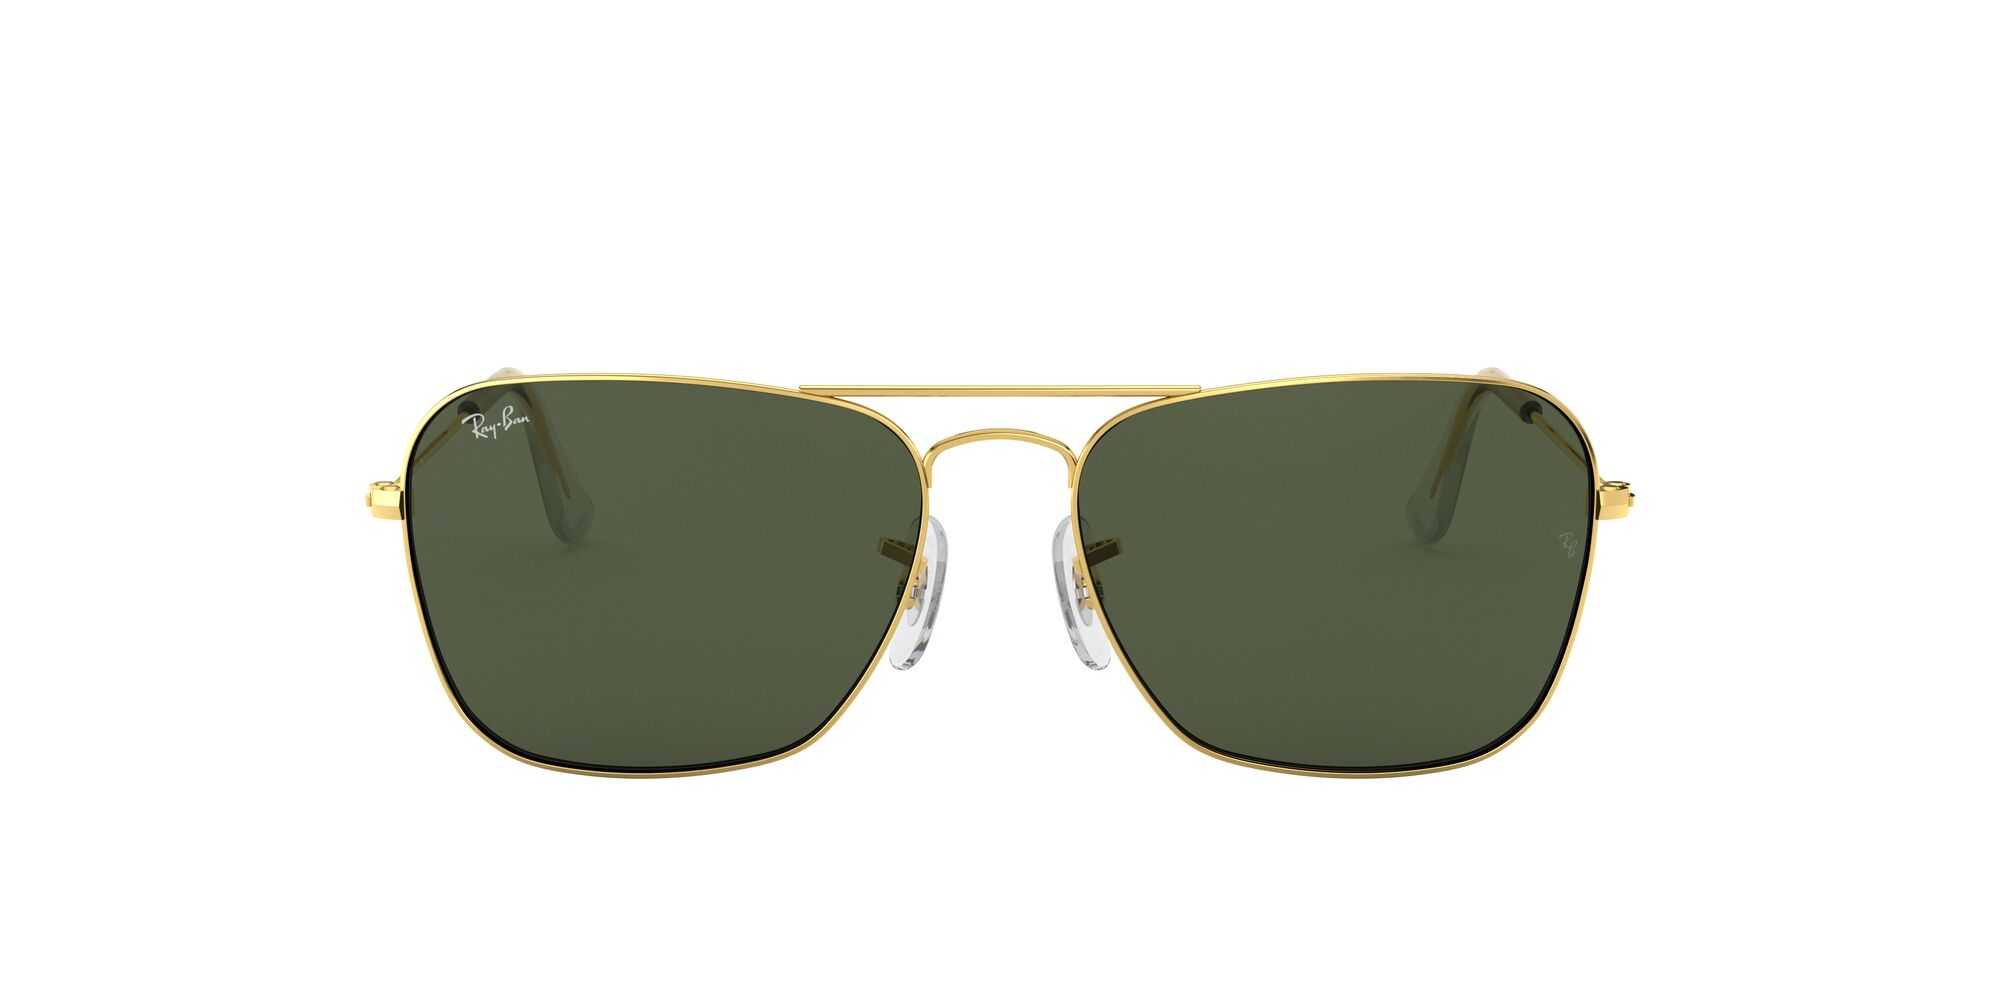 Front Ray-Ban Ray-Ban RB3136 001 55/15 Goud/Groen